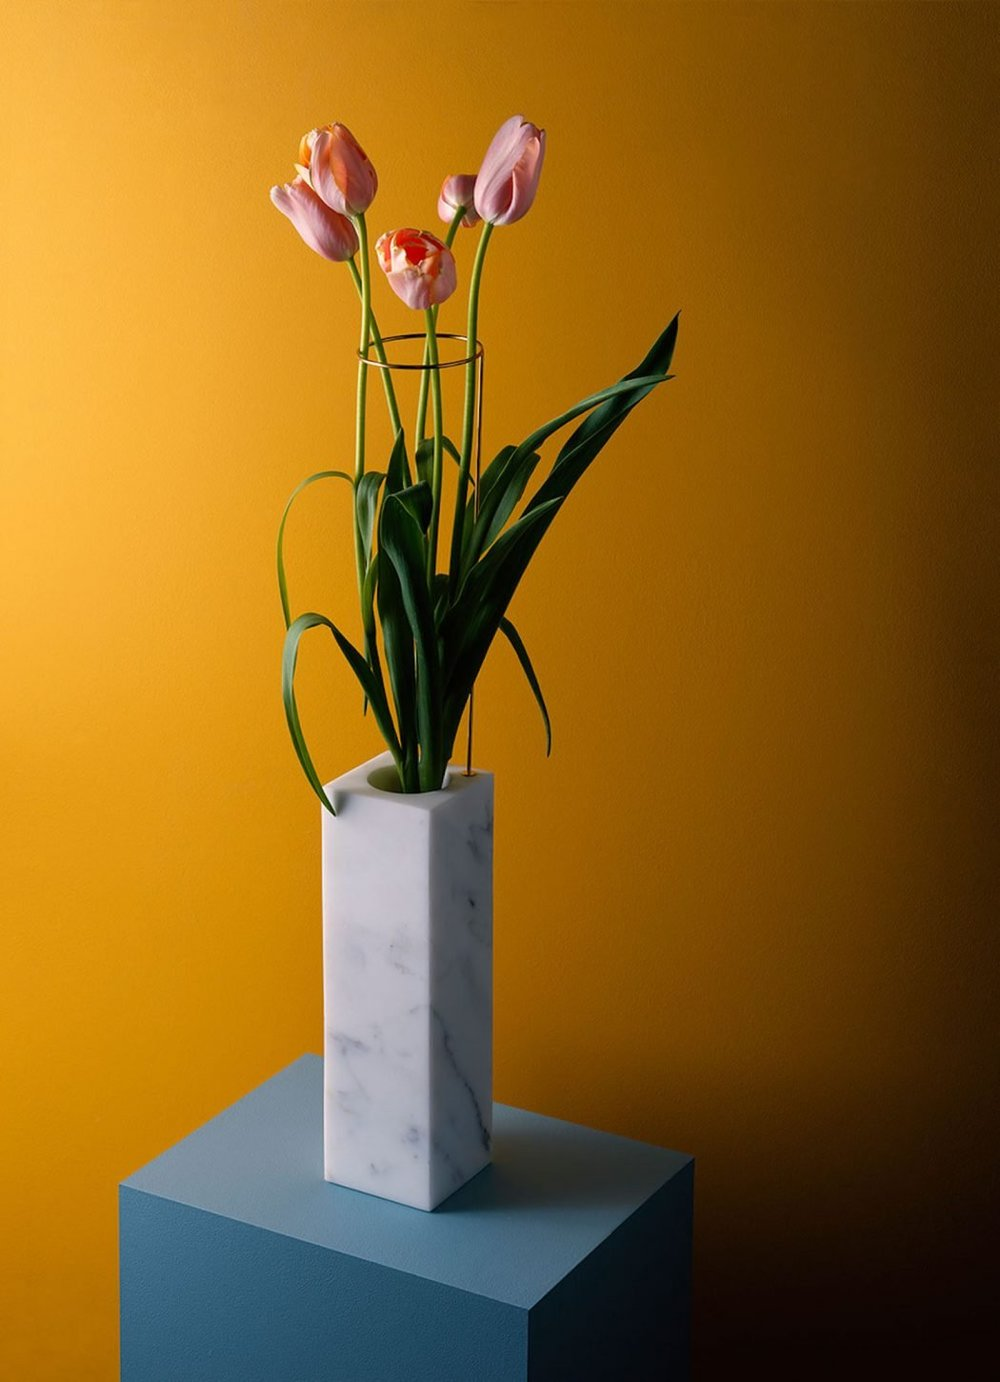 Marble vase and flower design on yellow background